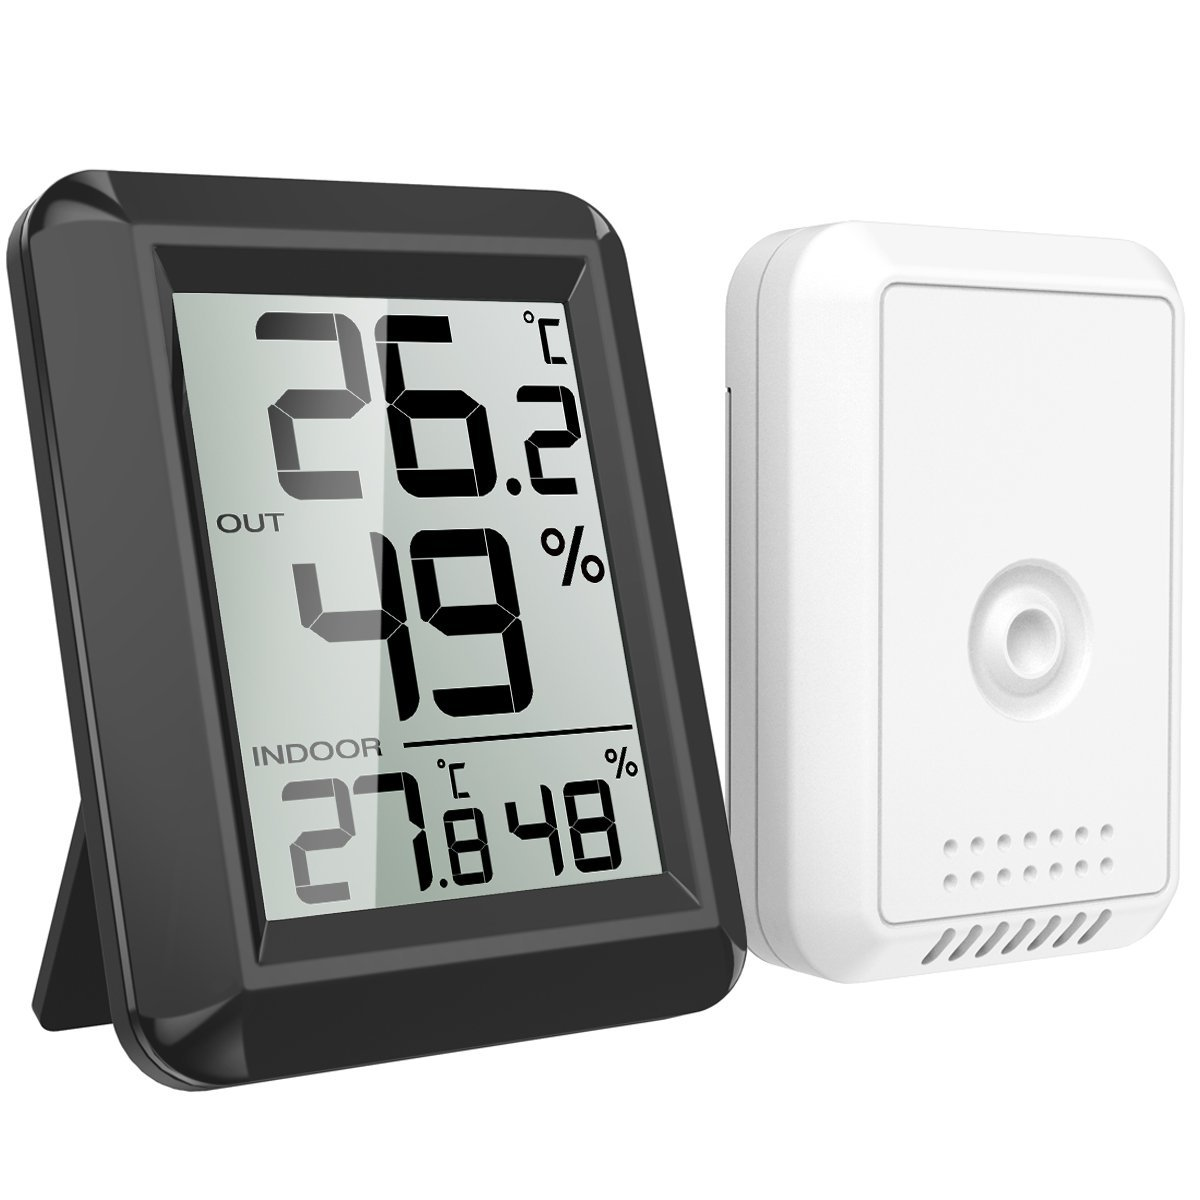 AMIR Digital Hygrometer Indoor Outdoor Thermometer, Humidity Monitor with Temperature Humidity Gauge, Wireless Outdoor Hygrometer, Room Thermometer for Home, Office, Baby Room, etc(Mini-Black)